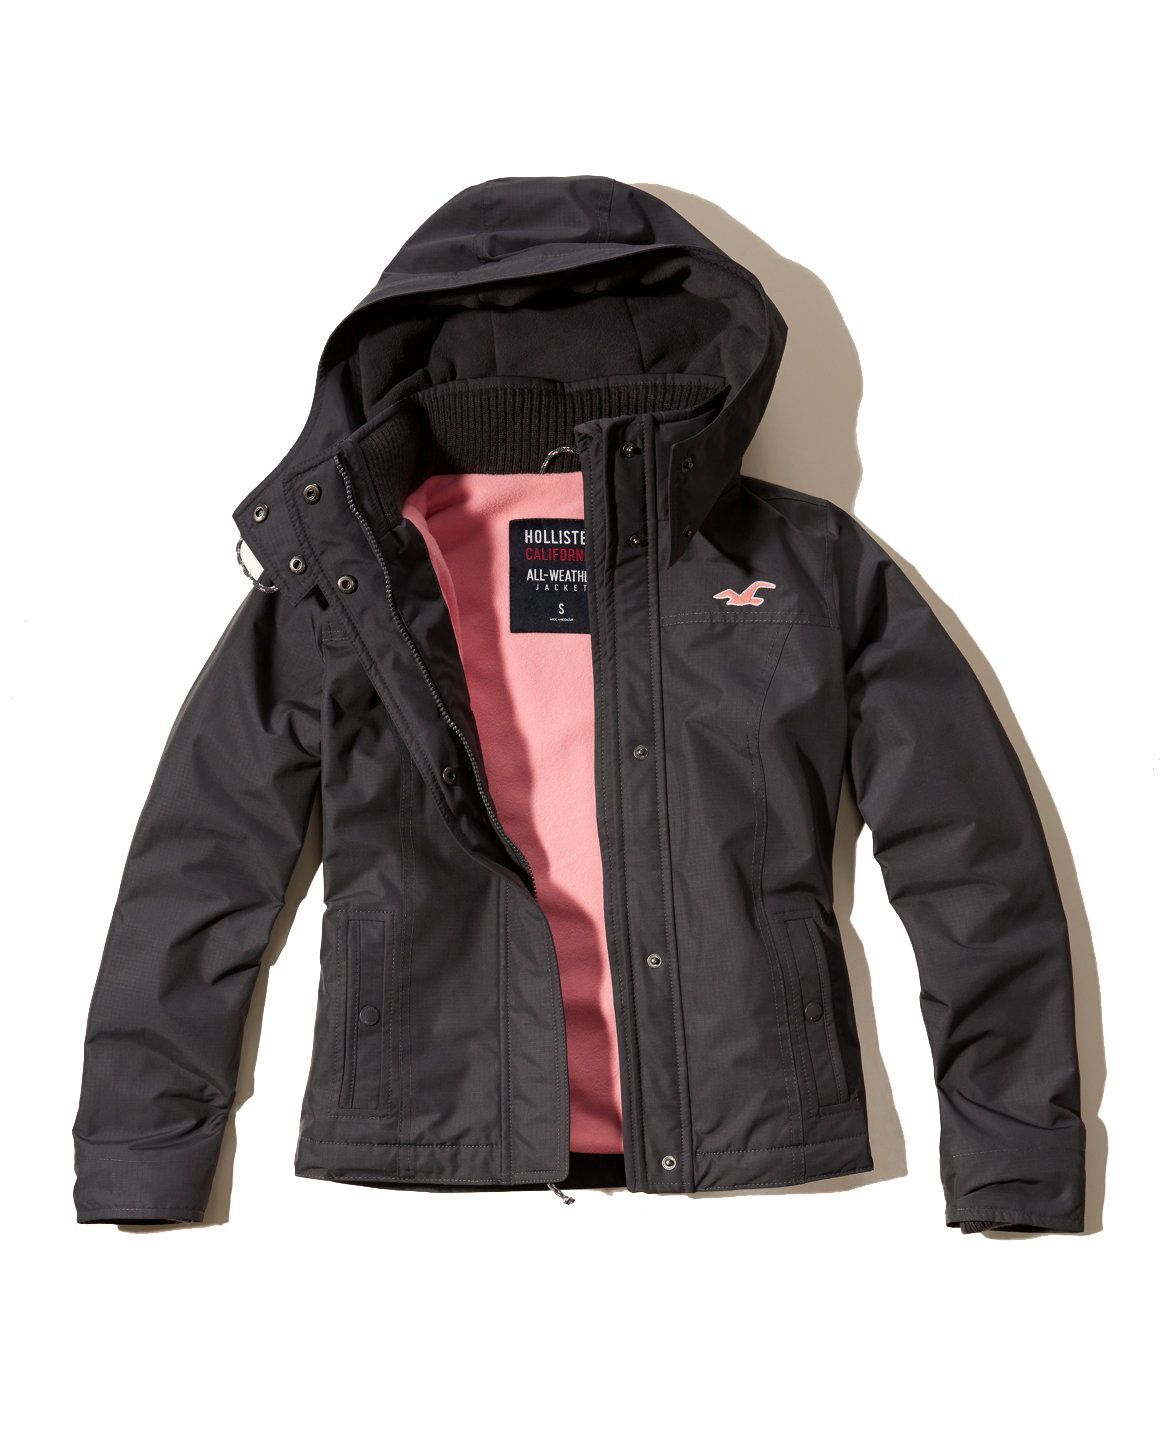 Hollister Womens All Weather Jacket Gray  b9a0f061a